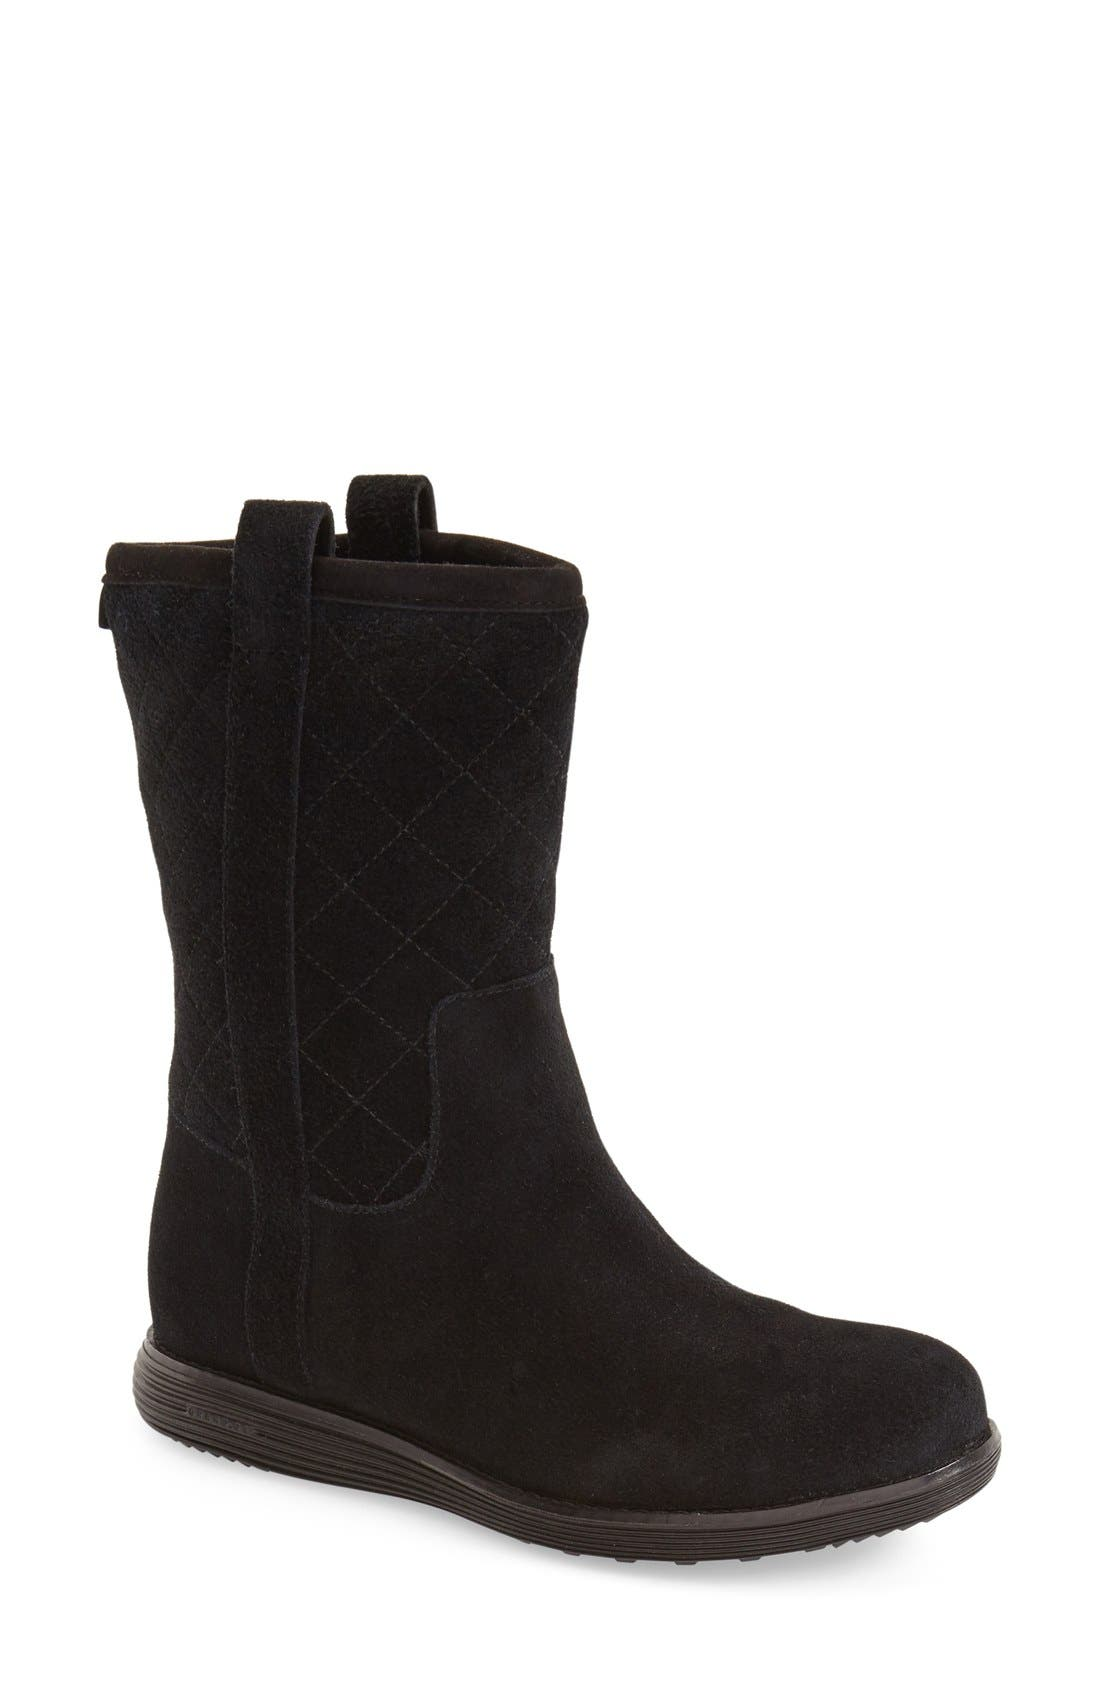 'Roper' Waterproof Boot,                             Main thumbnail 1, color,                             Black Suede